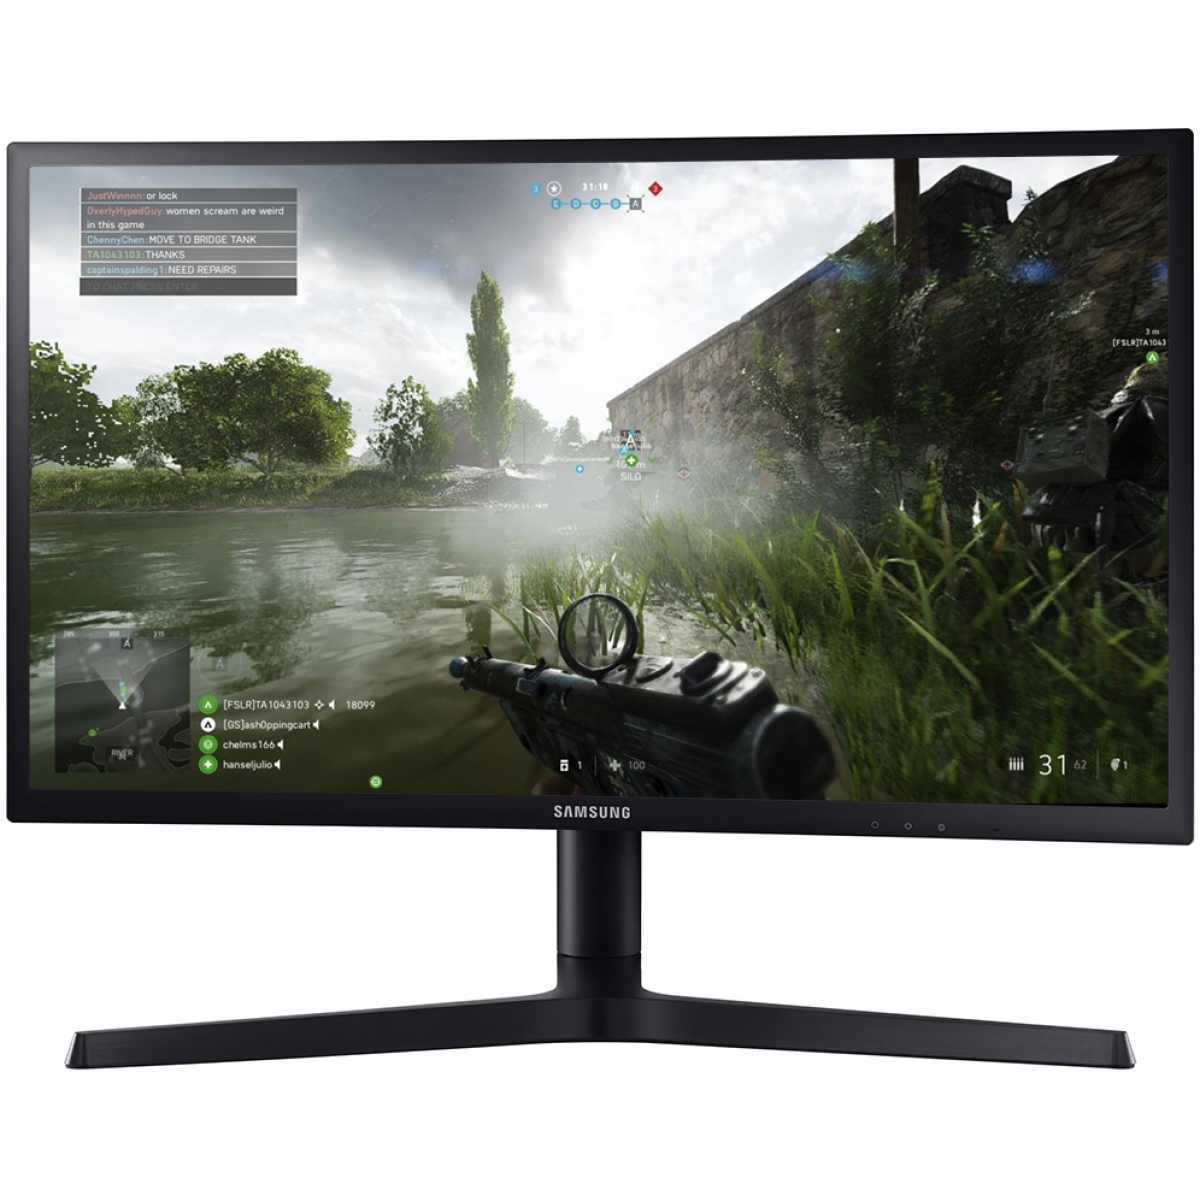 Monitor Gamer Samsung 23.5 Pol, Full HD, QLED, 144HZ, 1ms, LC24FG73FQLXZD